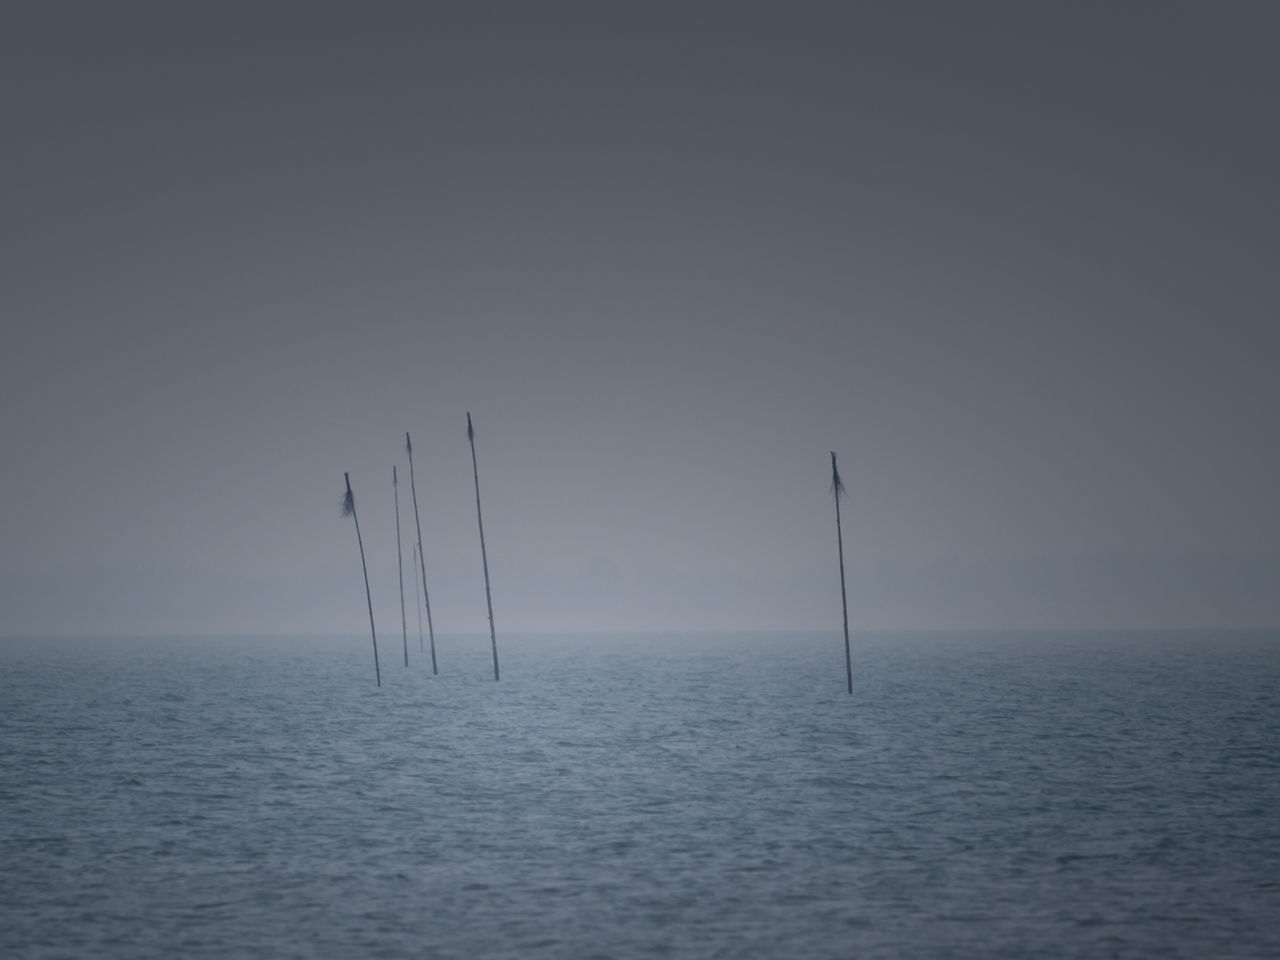 waterfront, water, horizon over water, horizon, sea, sky, beauty in nature, tranquil scene, scenics - nature, tranquility, no people, nature, fog, seascape, outdoors, copy space, day, non-urban scene